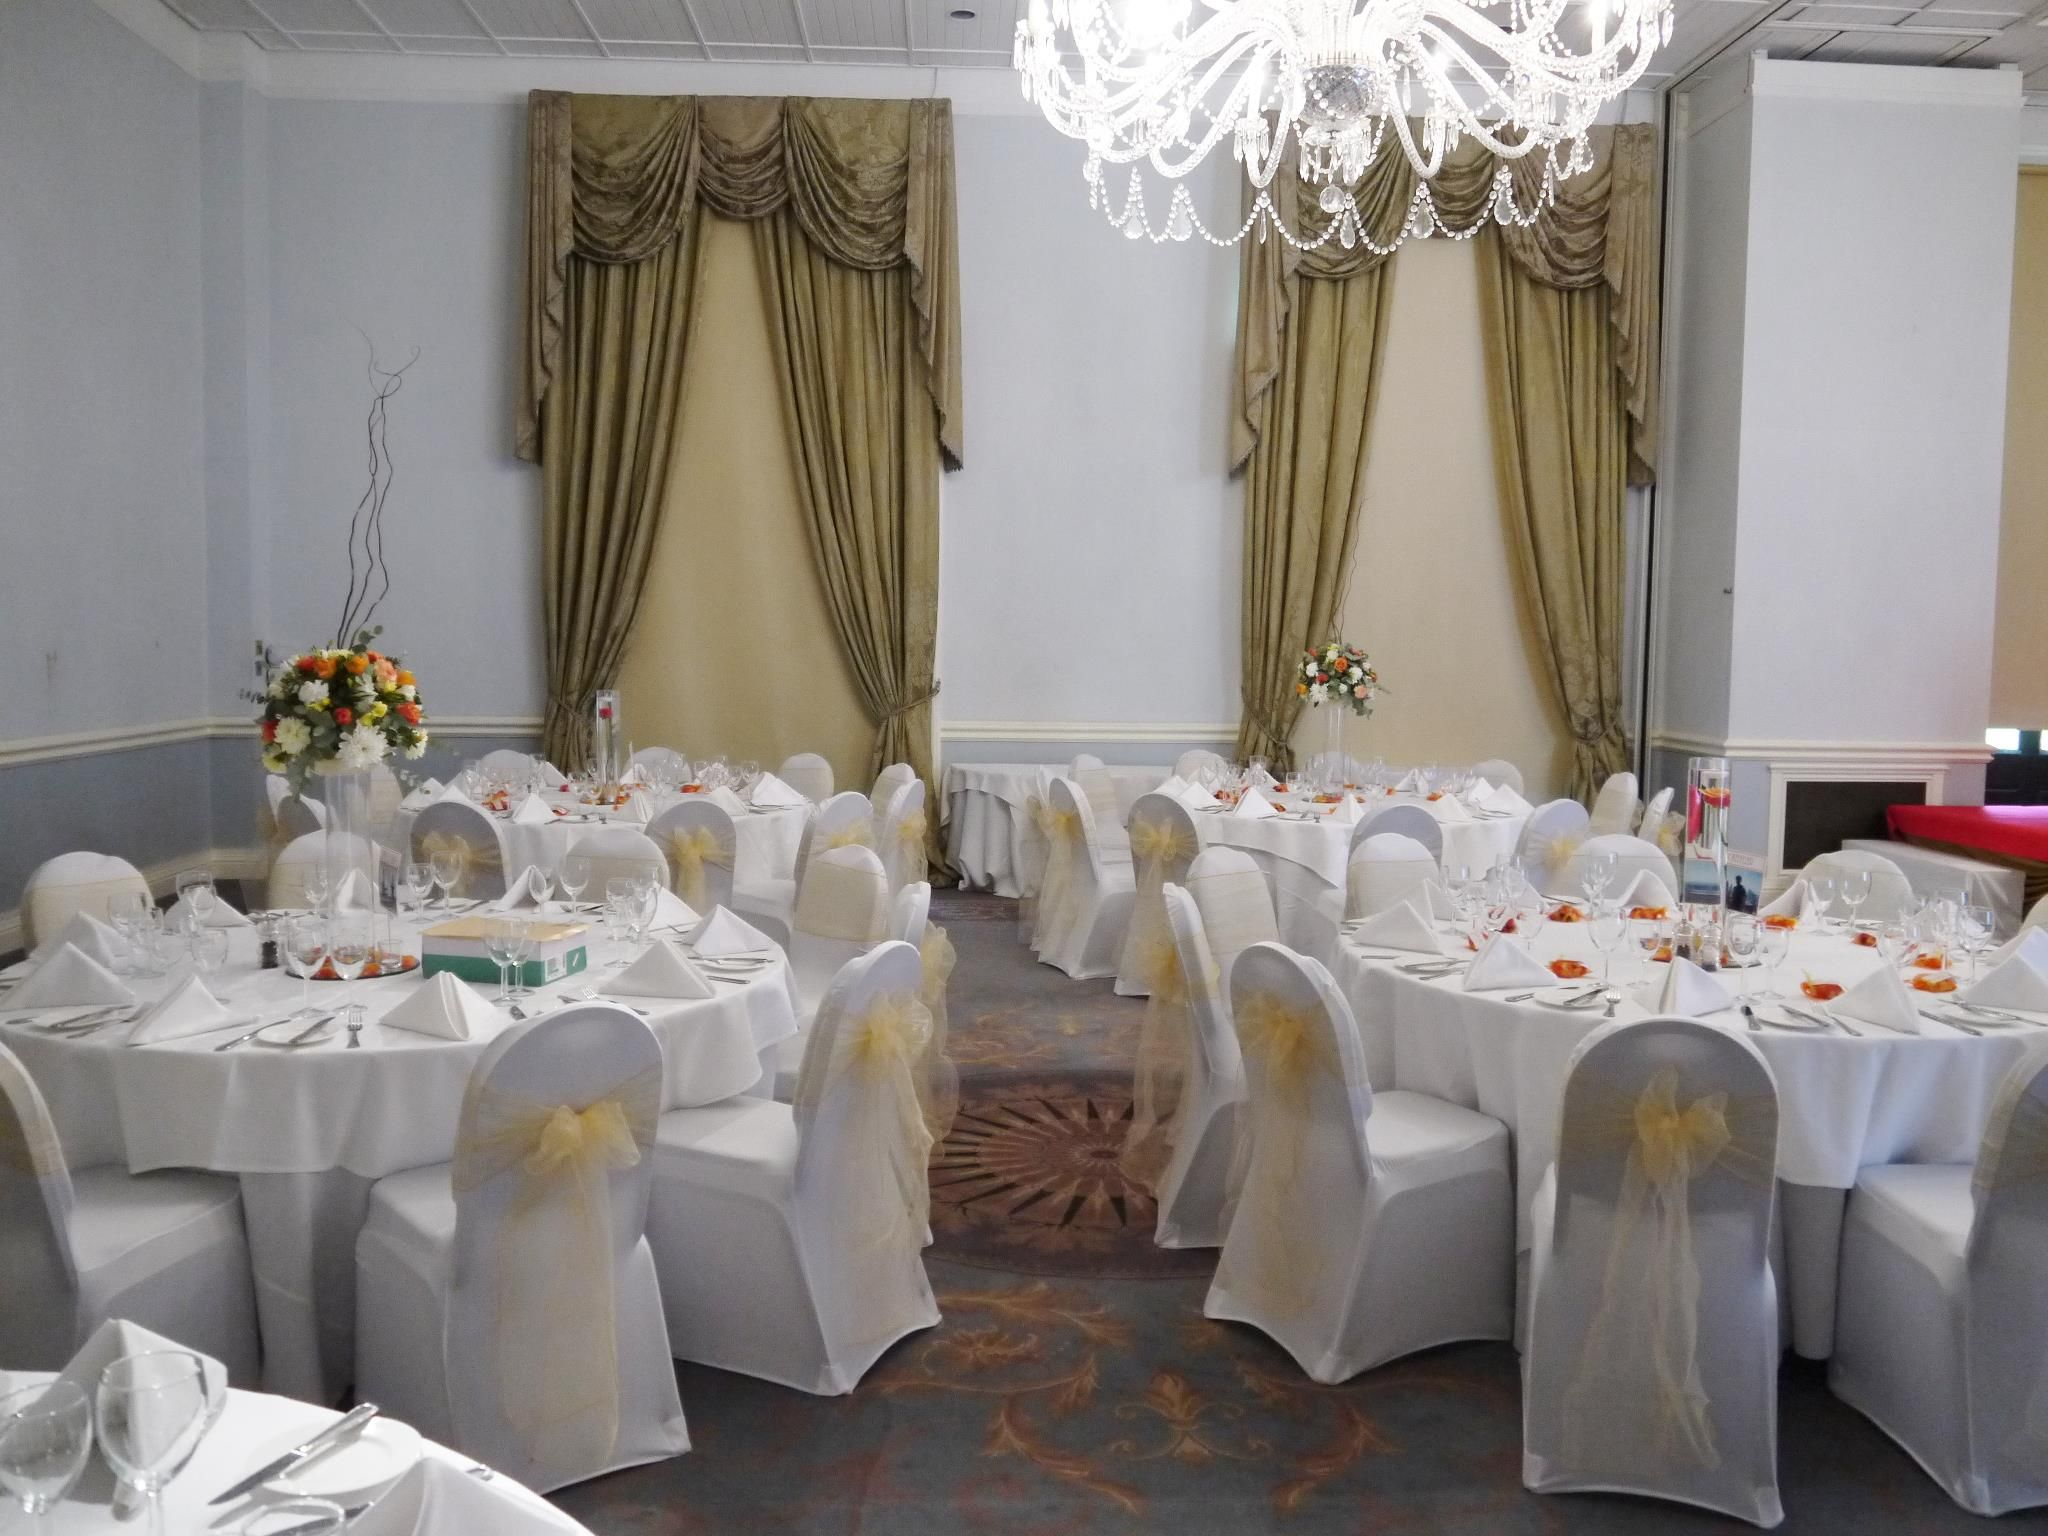 Wedding Chair Covers Melton Mowbray Comfortable Bedroom Chairs Stapleford Park Pinterest